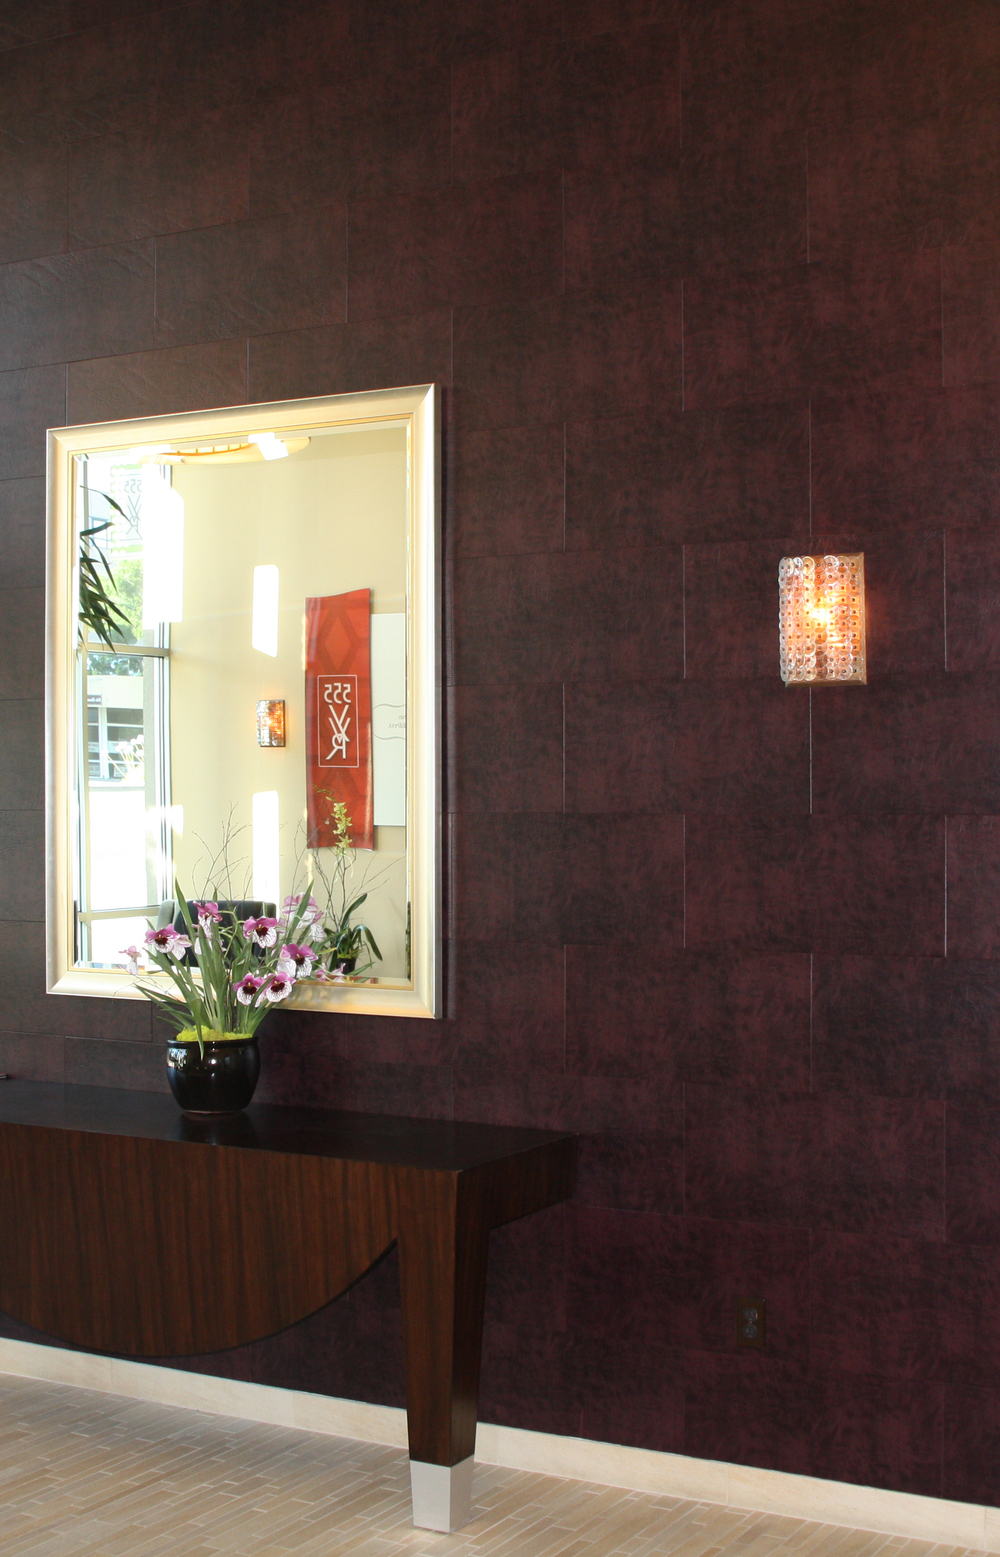 Feature Wall - Condo Building - Burgundy Buffalo.jpg